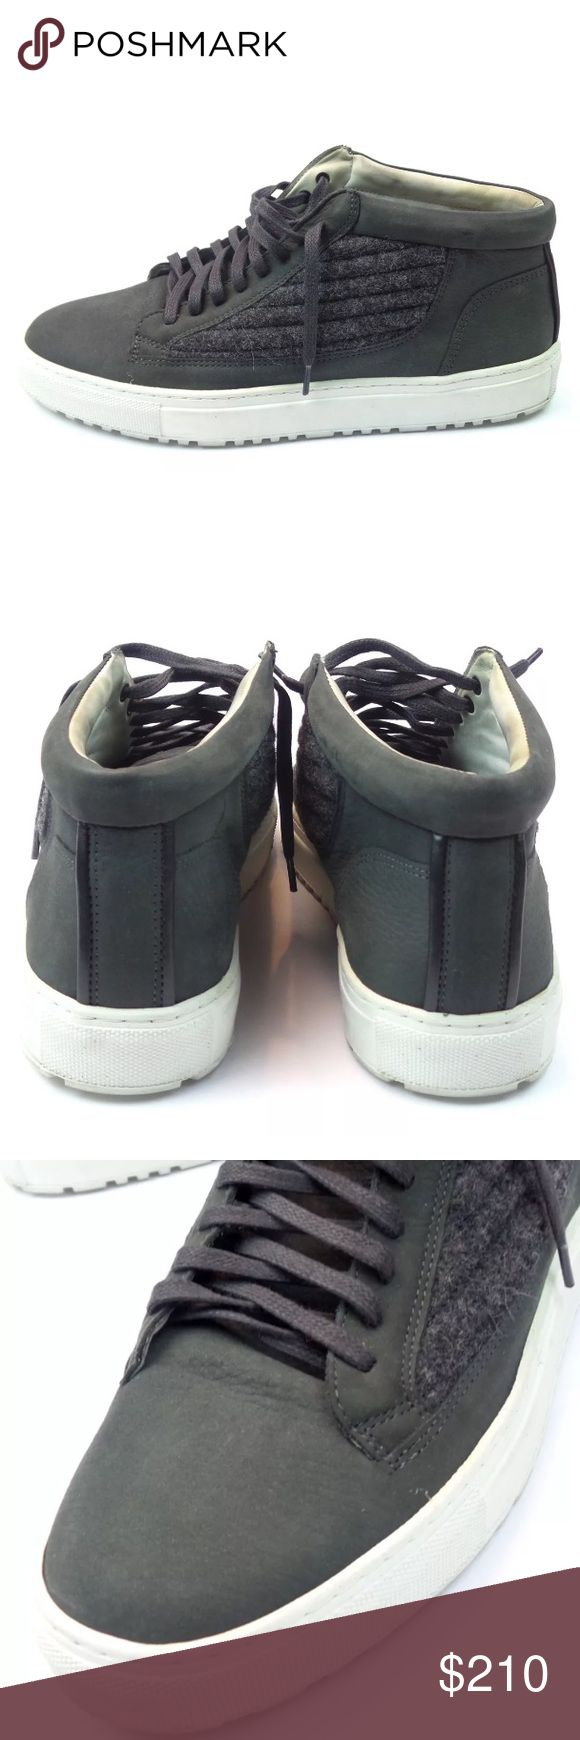 ETQ Mid Top Gray Leather Trainer Sneaker Shoes 42 ETQ Mid Top Gray Leather Trainer Sneaker Shoes Size 42 ETQ Shoes Sneakers